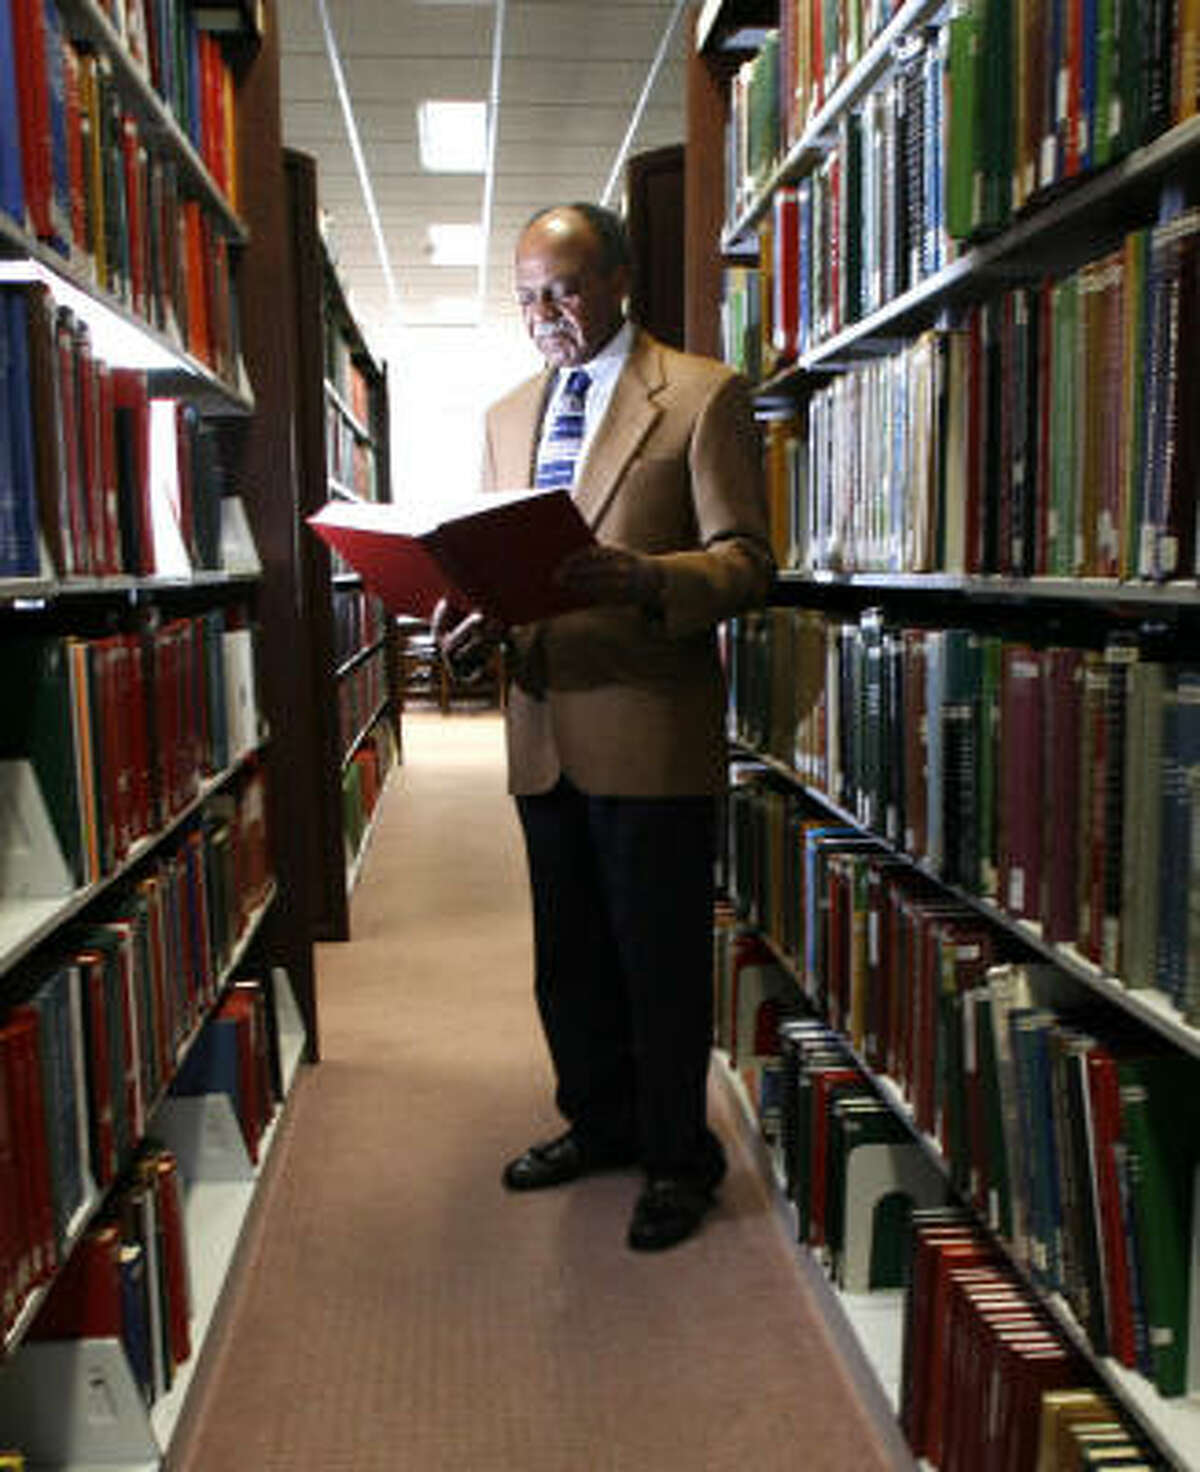 With the help of genealogical resources at the Clayton Library Center in Houston, retired teacher Melvin Myers has found Anglo relatives living in South Carolina.